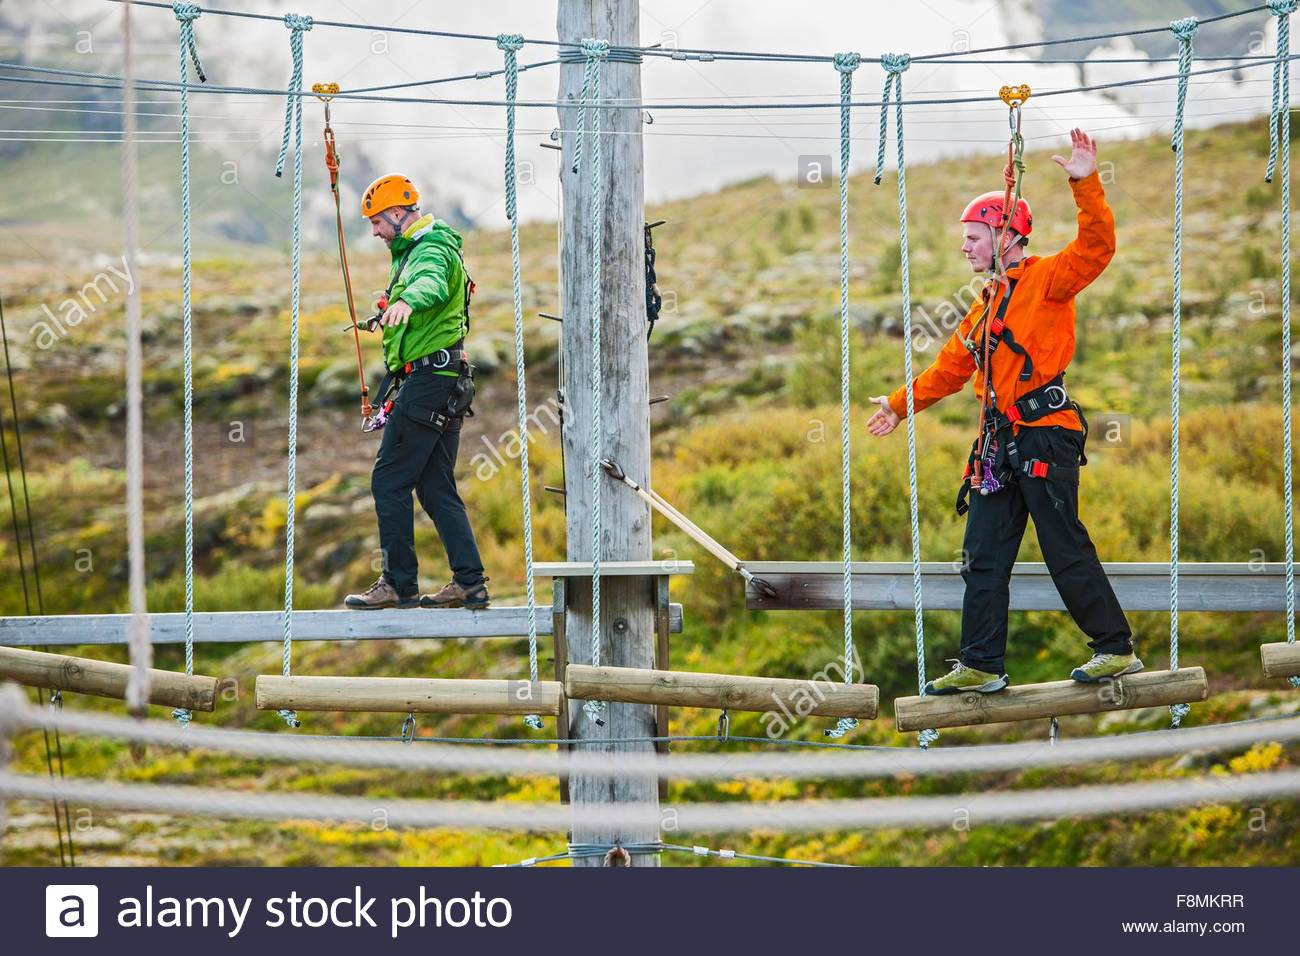 Men balancing at high rope access course, Iceland - Stock Image